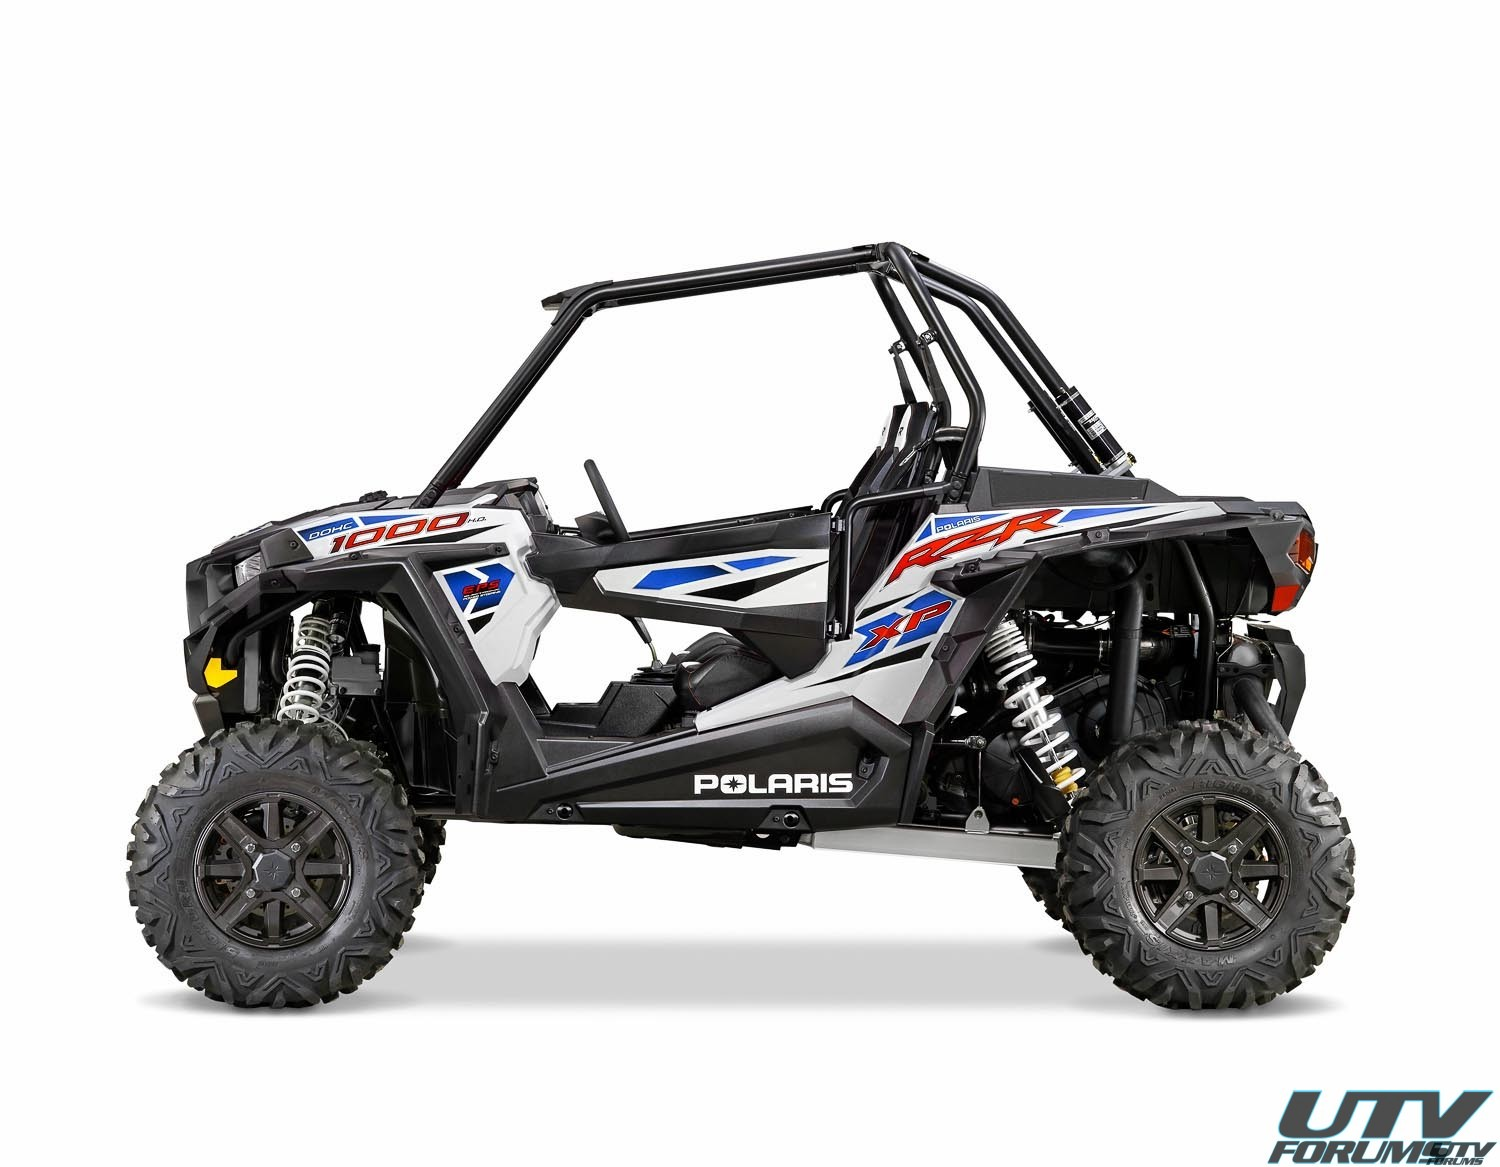 Polaris RZR XP 4 900 Liquid Silver (2012)